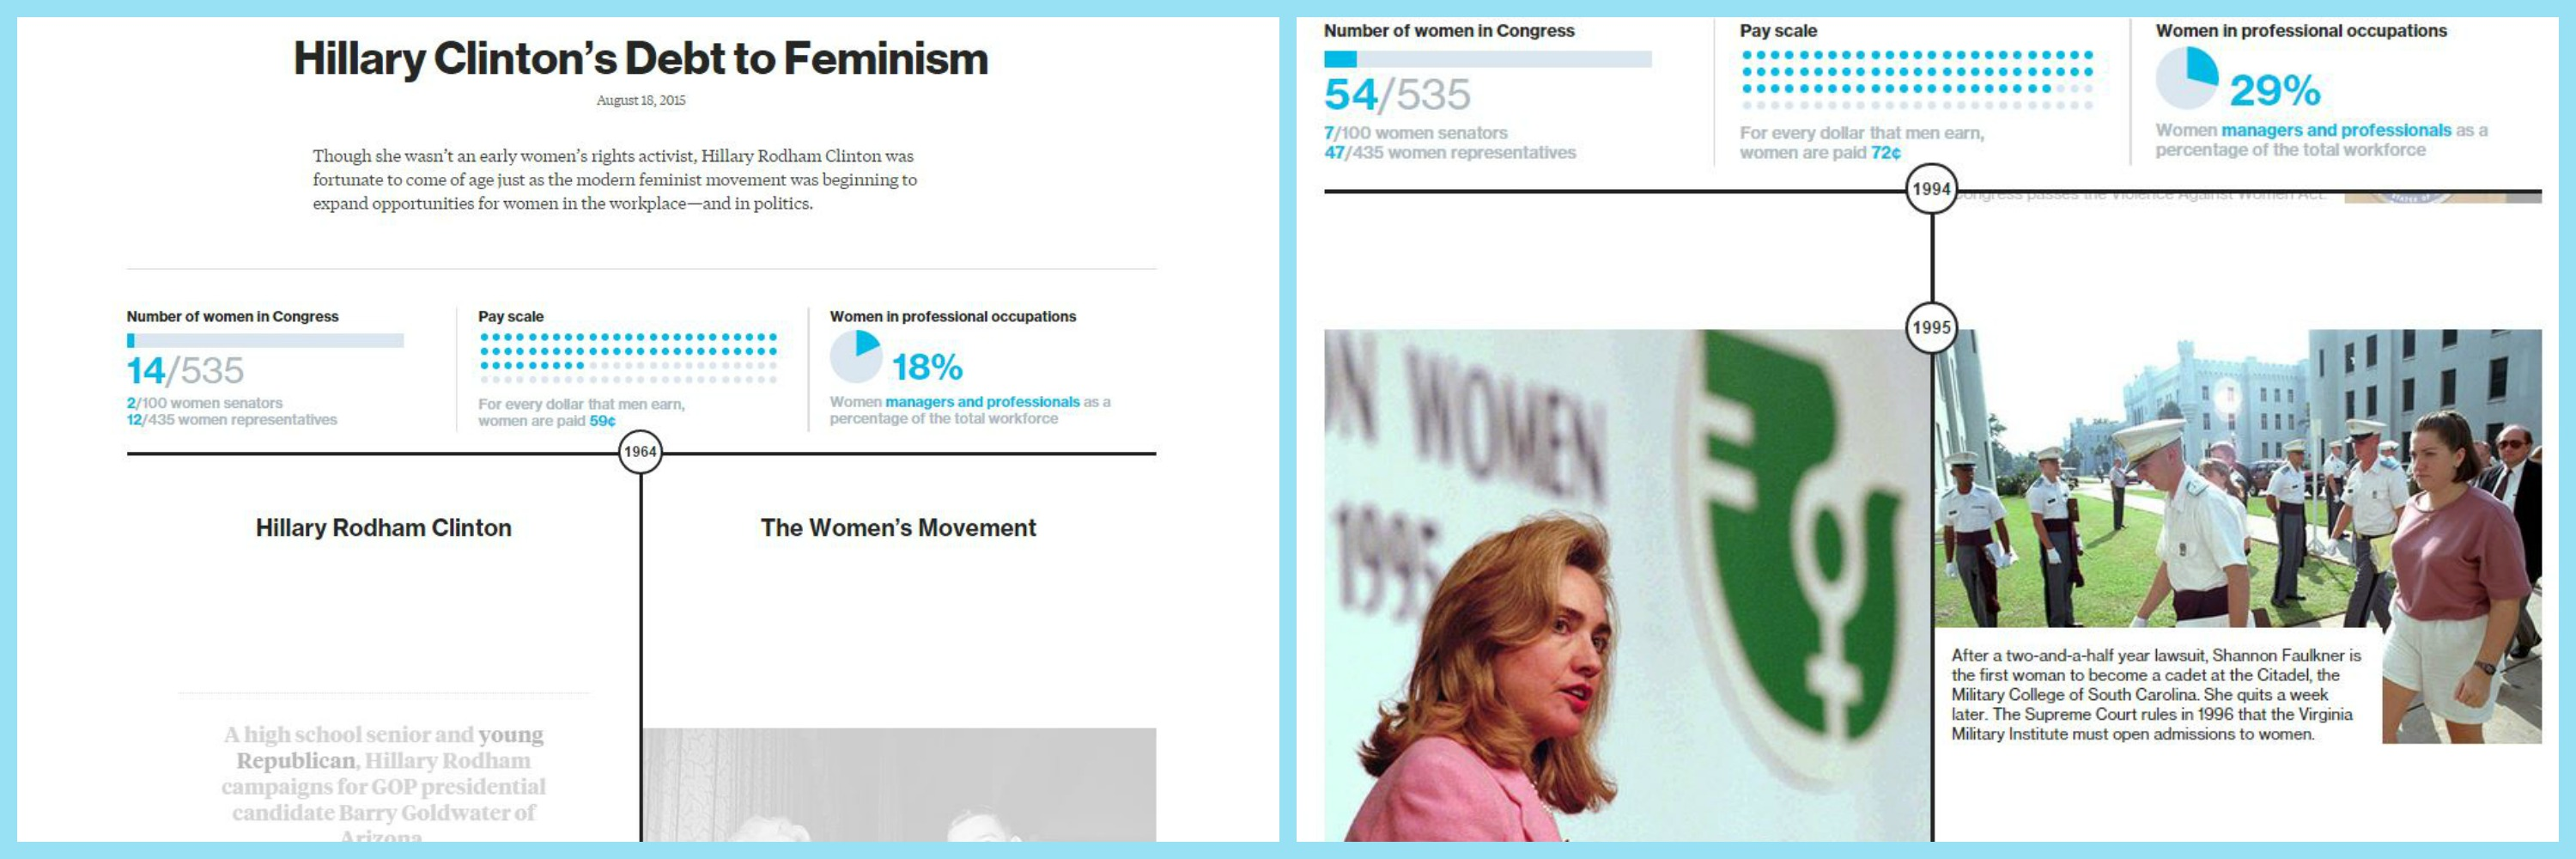 Data Stories of the week - Bloomberg Hillary Clinton's Debt to Feminism